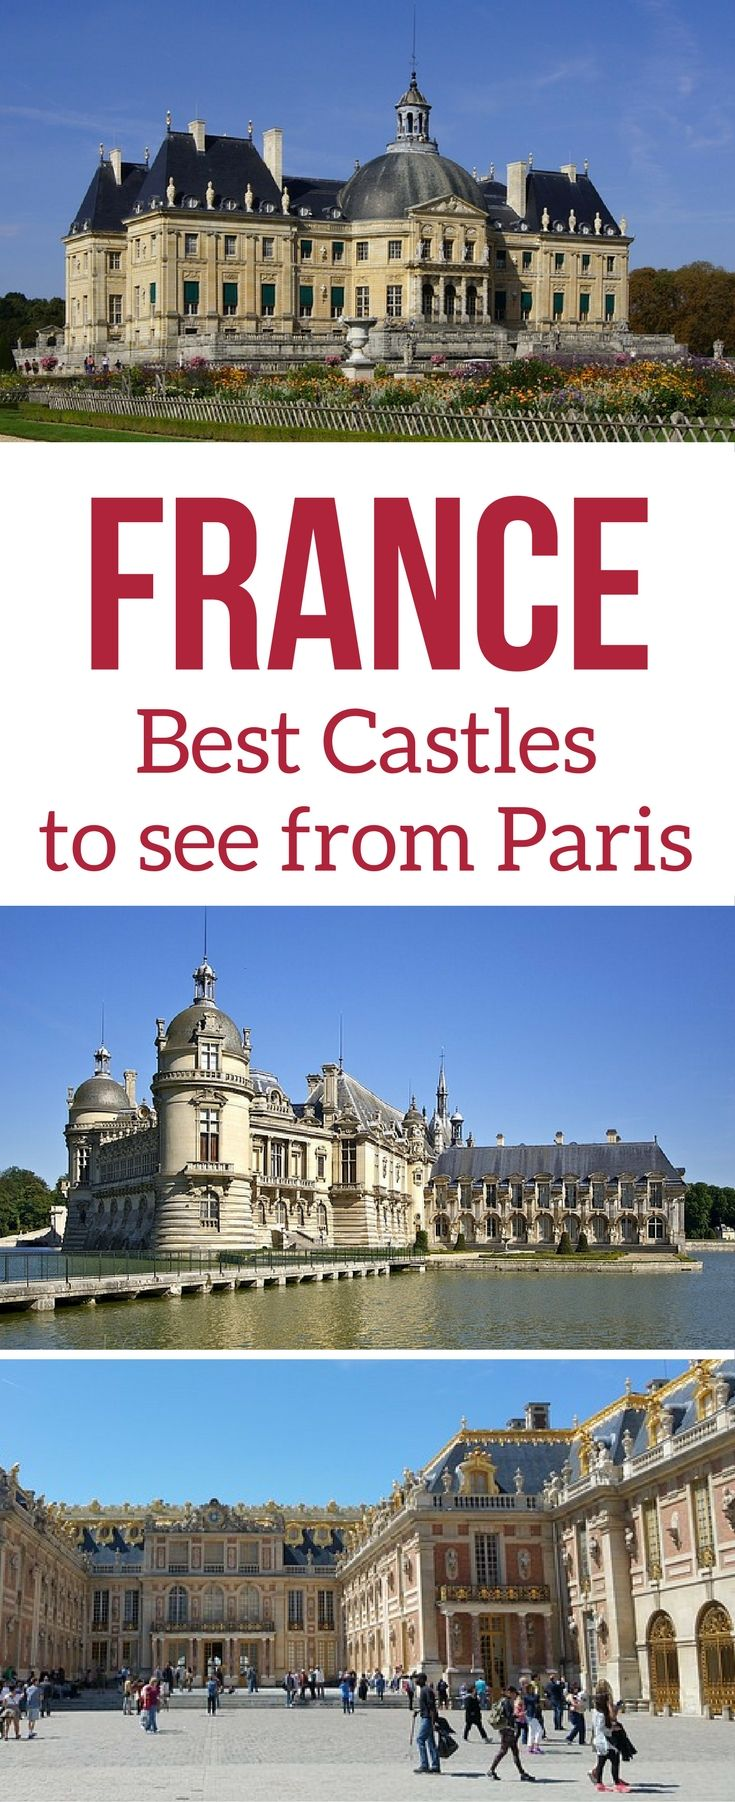 35 best day trips from paris france guide map tips by local paris travel some of the best day trips from paris france are to see magnificent french castles unesco sites as well as other castles with impressive gumiabroncs Images